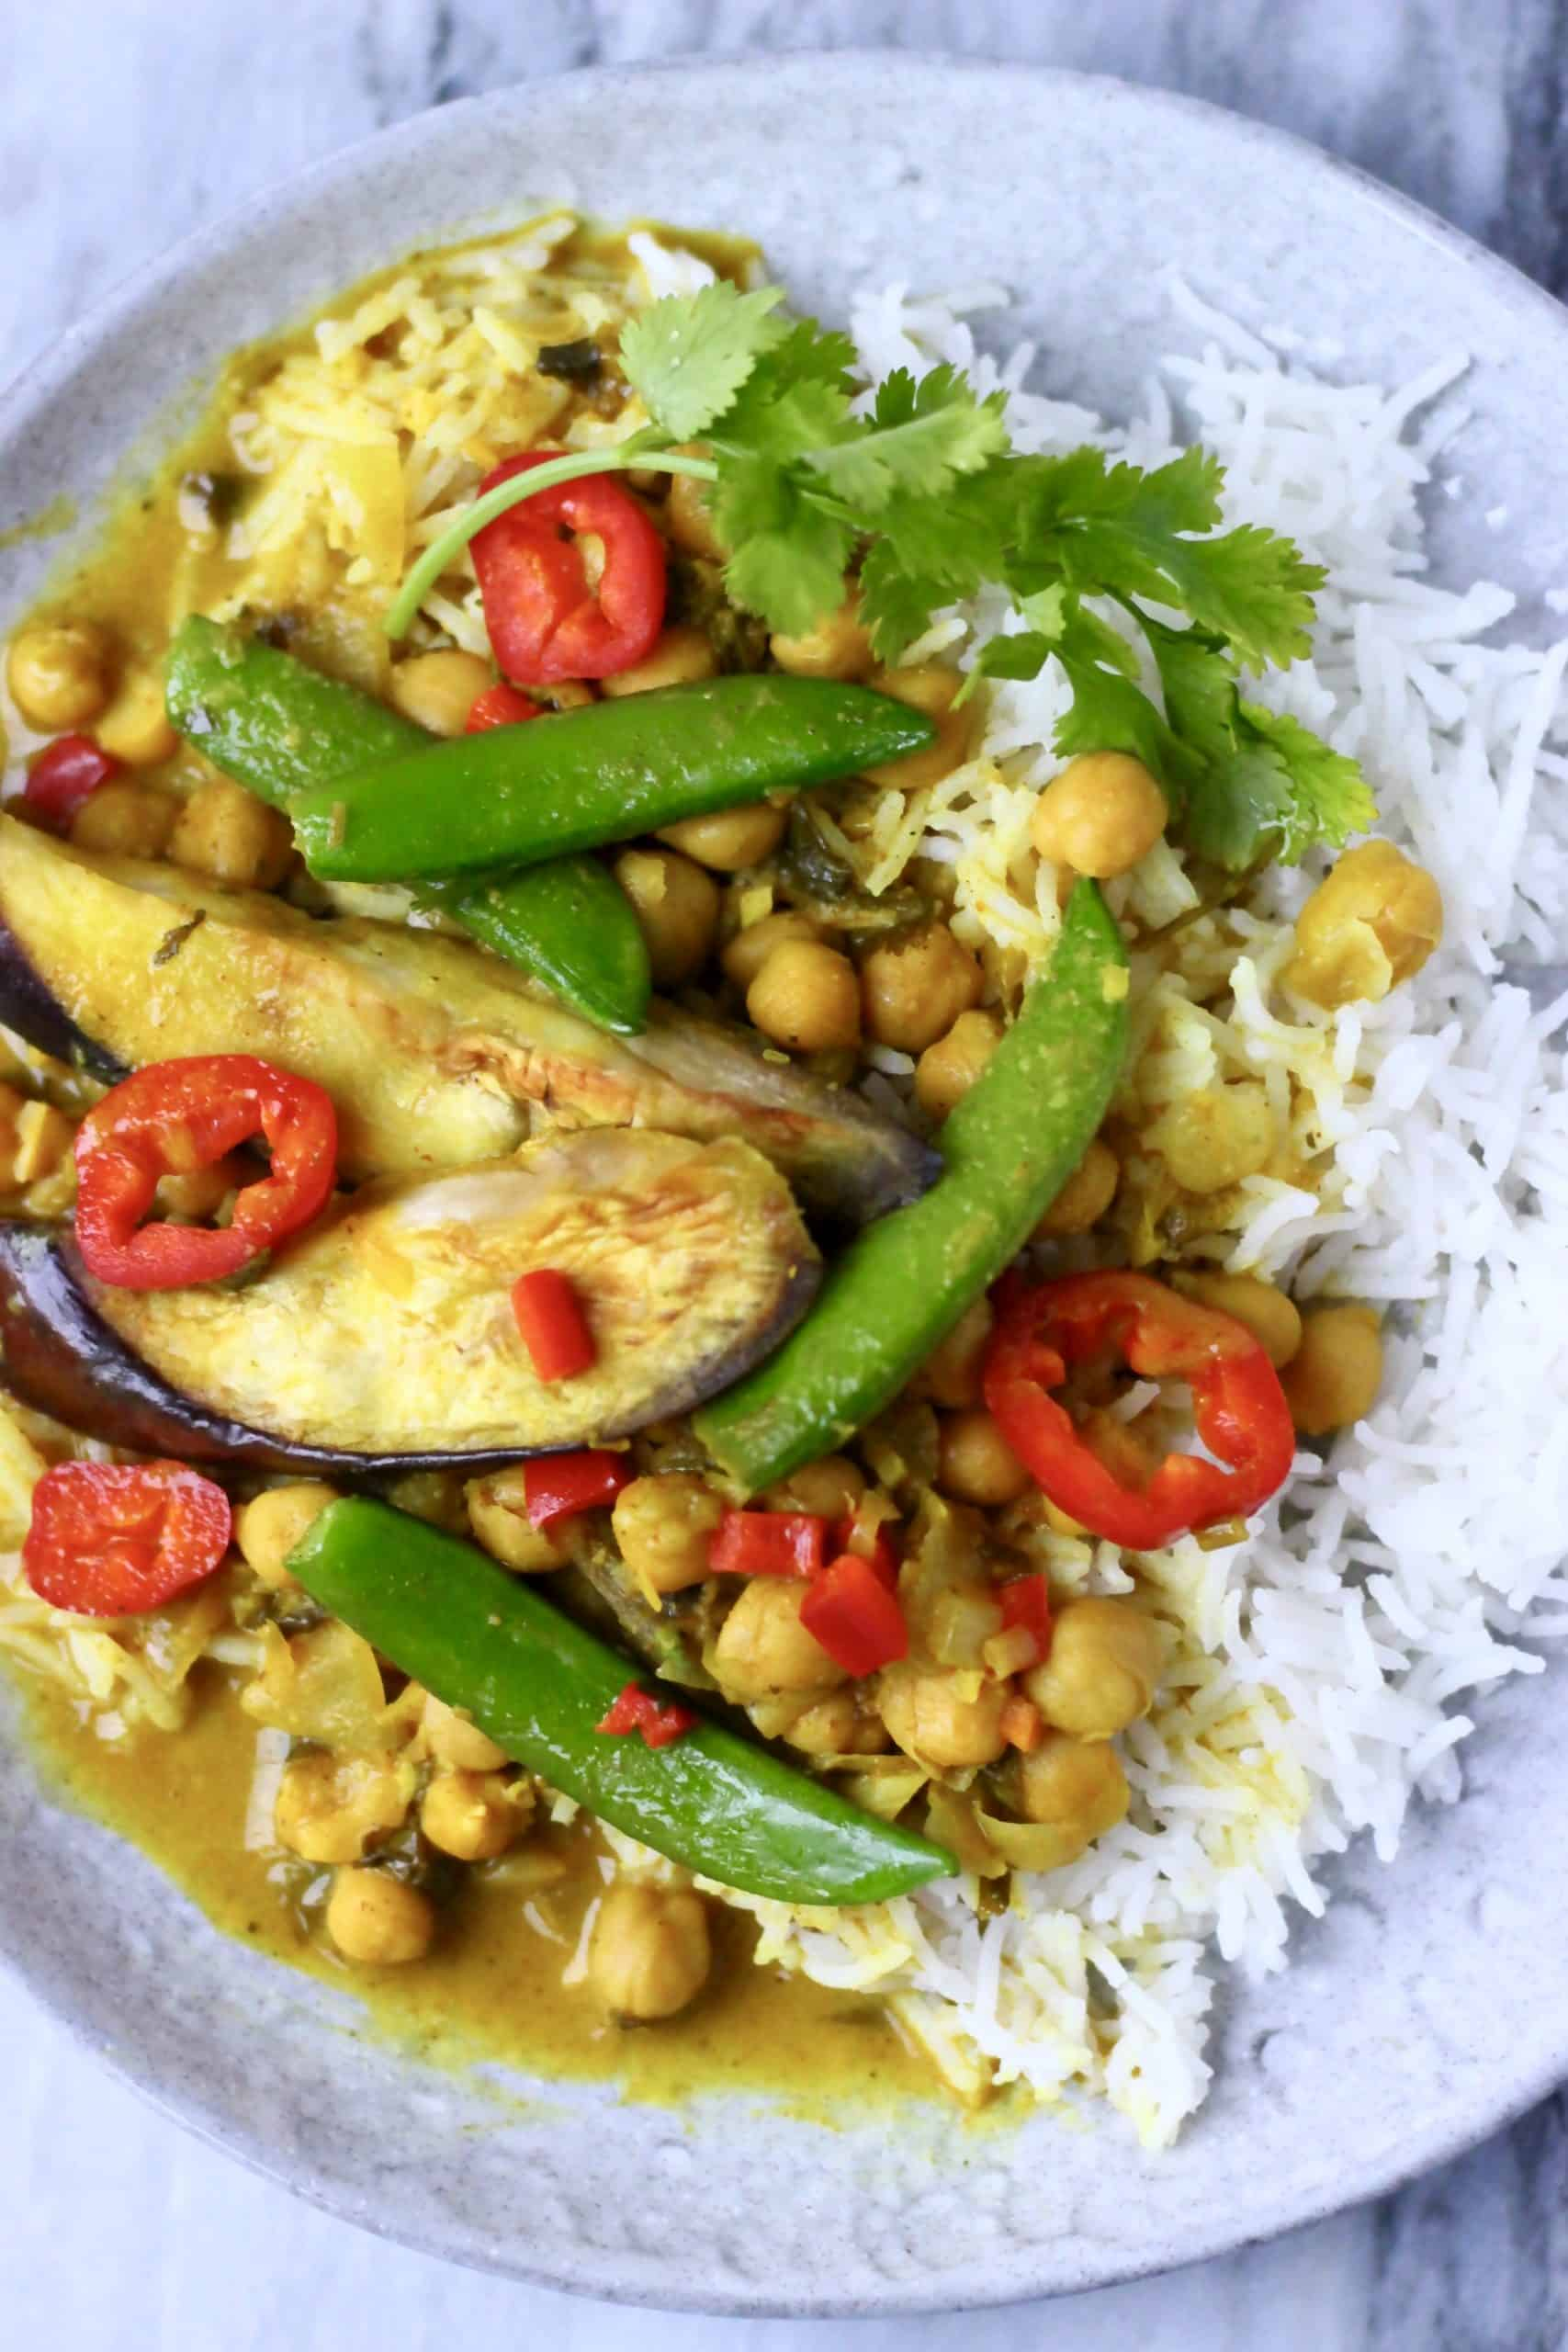 Eggplant chickpea peanut curry with rice on a white plate